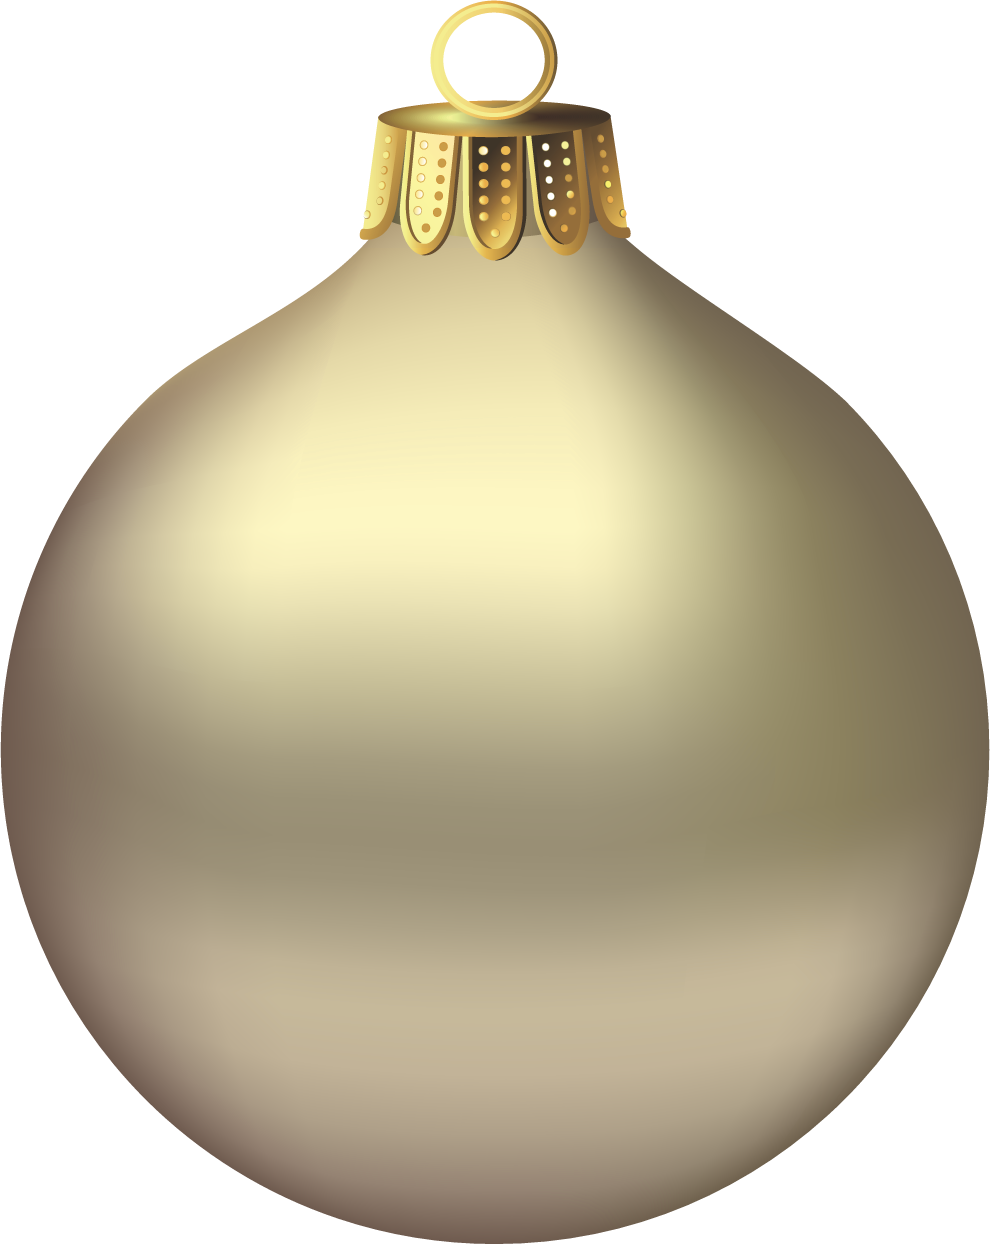 Gold christmas balls clipart banner black and white library Gold Christmas Ball Png (+) - Free Download | fourjay.org banner black and white library